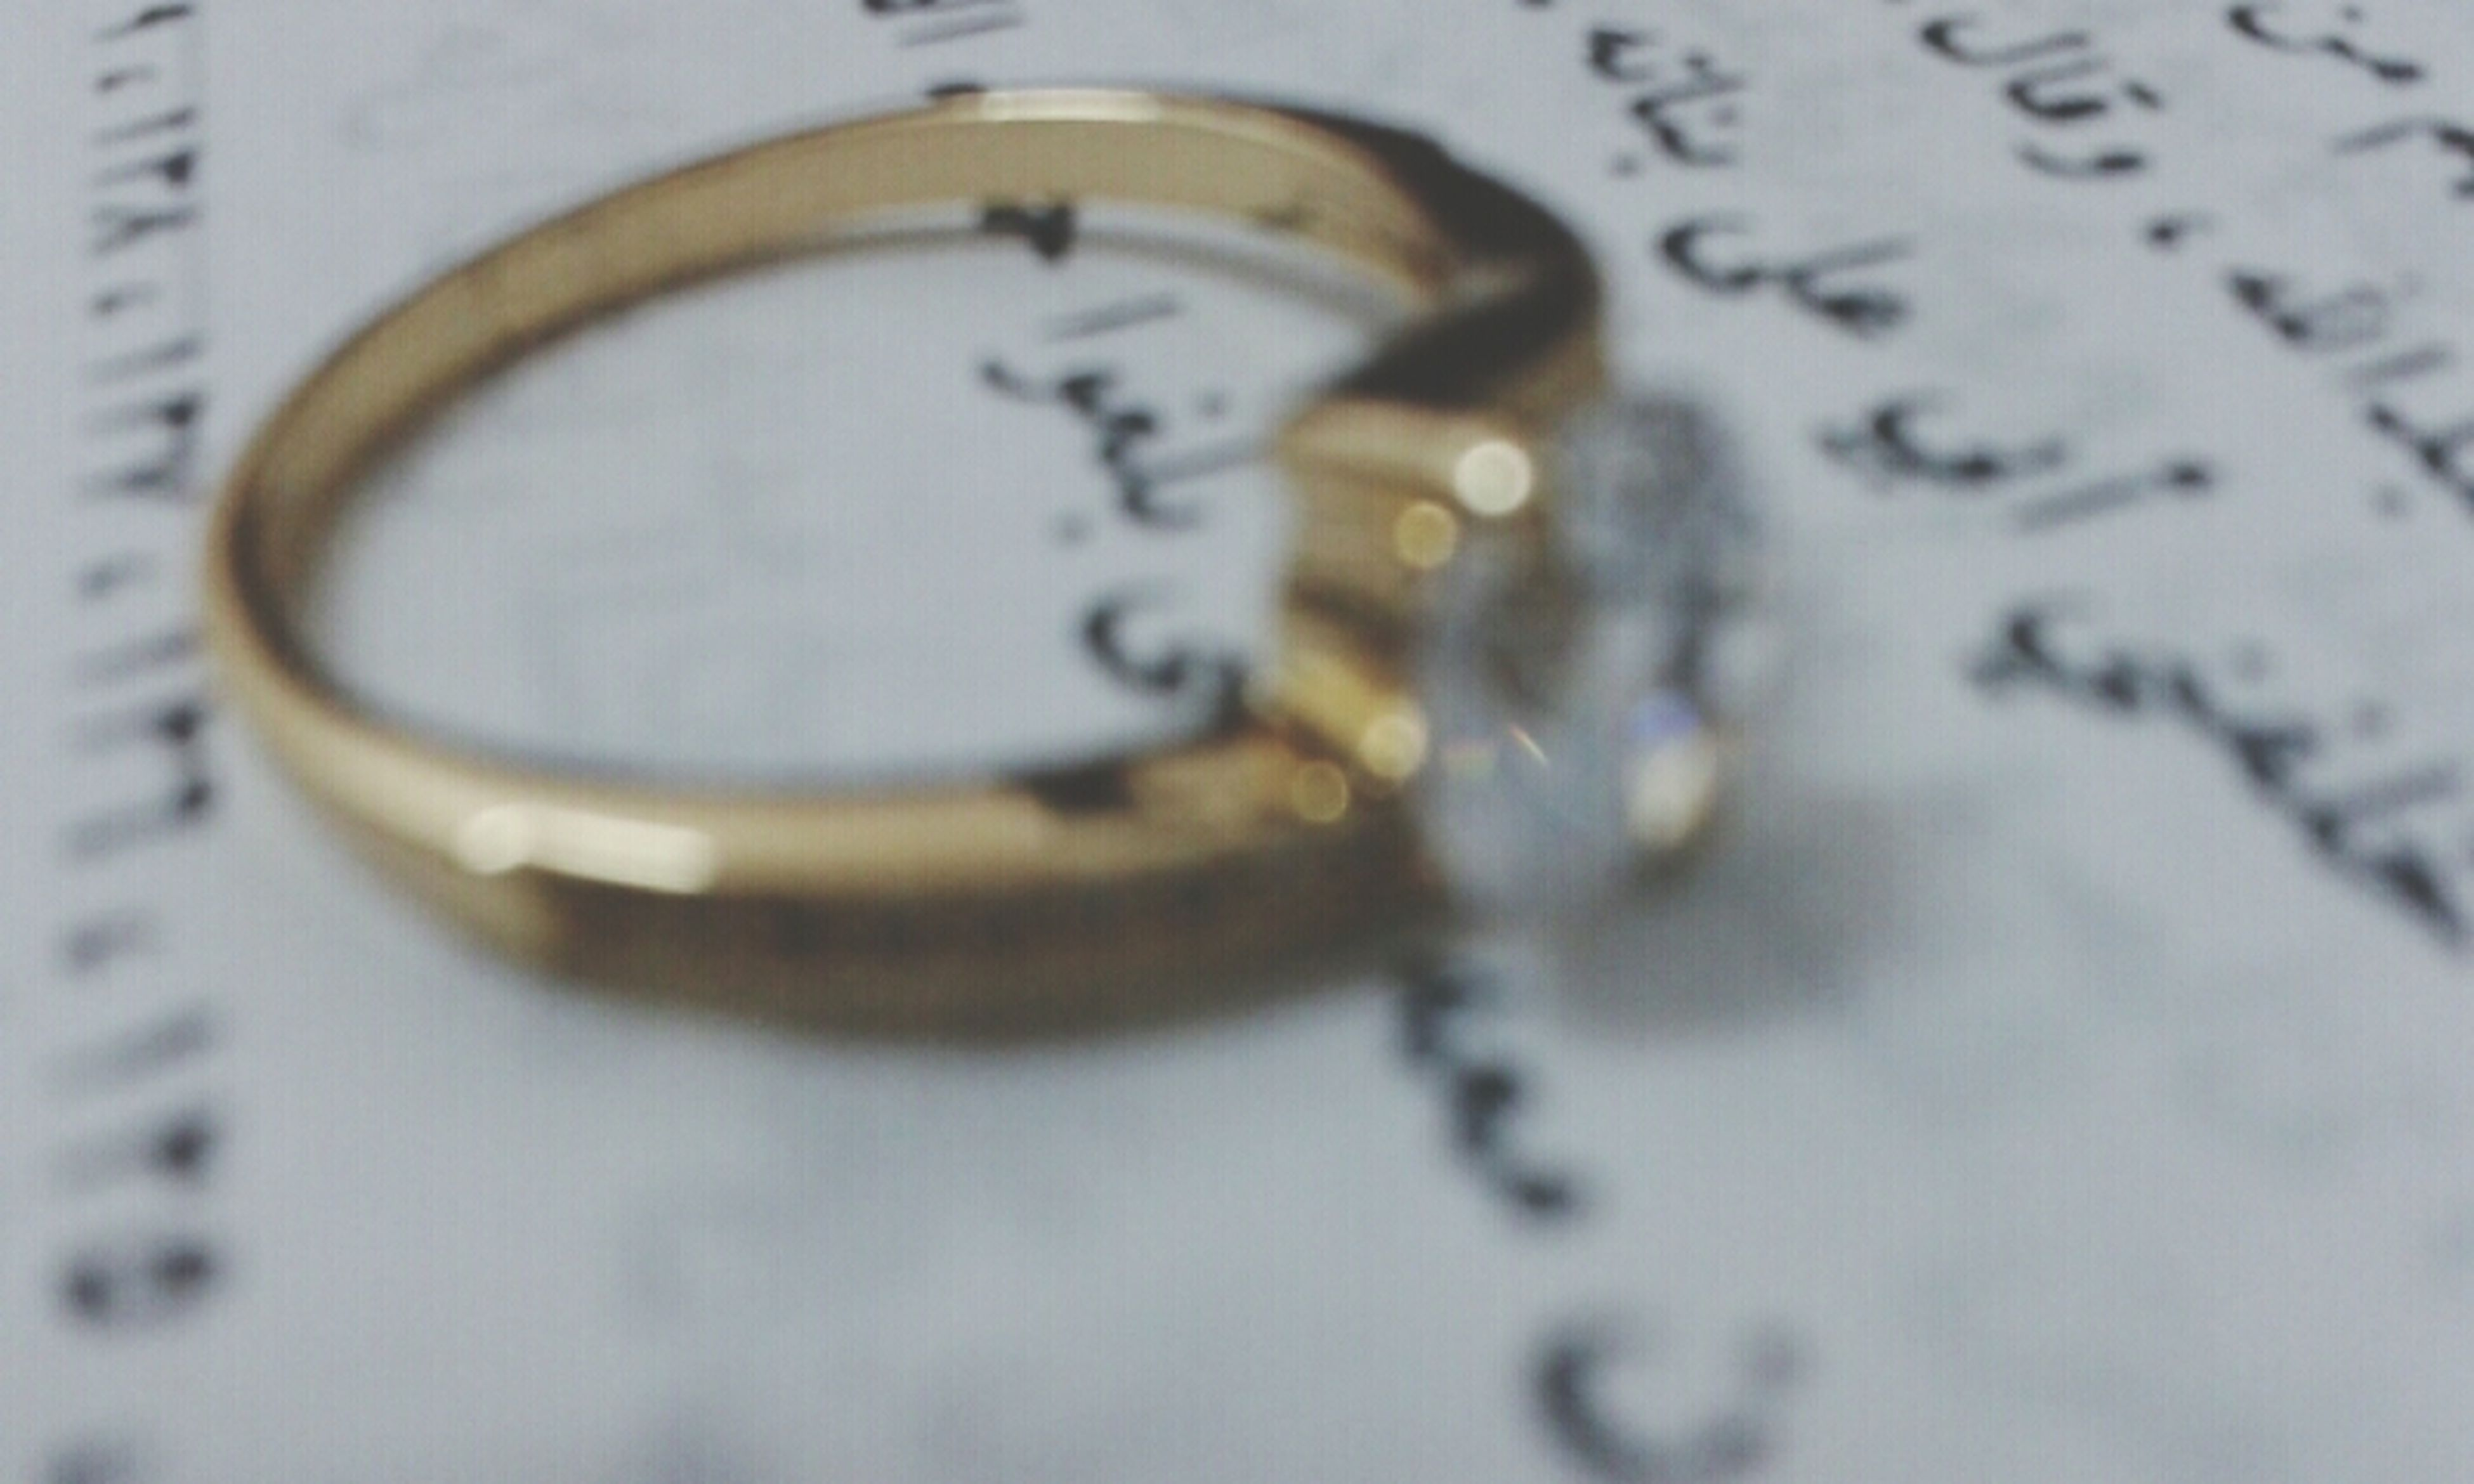 indoors, close-up, text, selective focus, communication, western script, number, still life, focus on foreground, table, single object, no people, high angle view, finance, wealth, time, part of, metal, full frame, circle